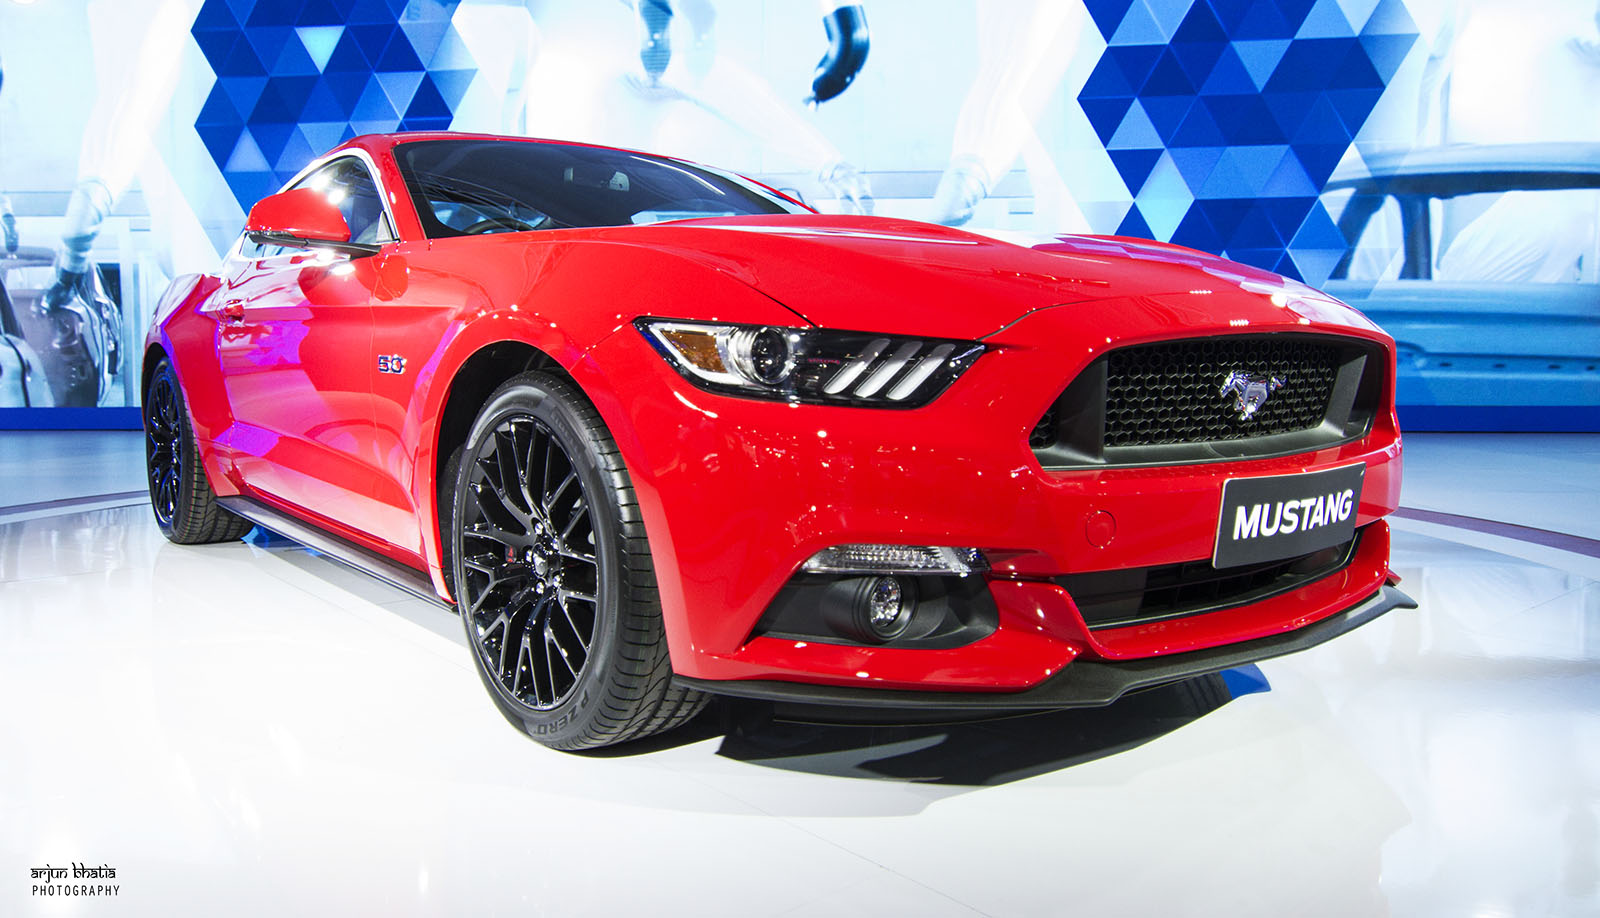 Ford Mustang Delhi Auto Expo 2016 3